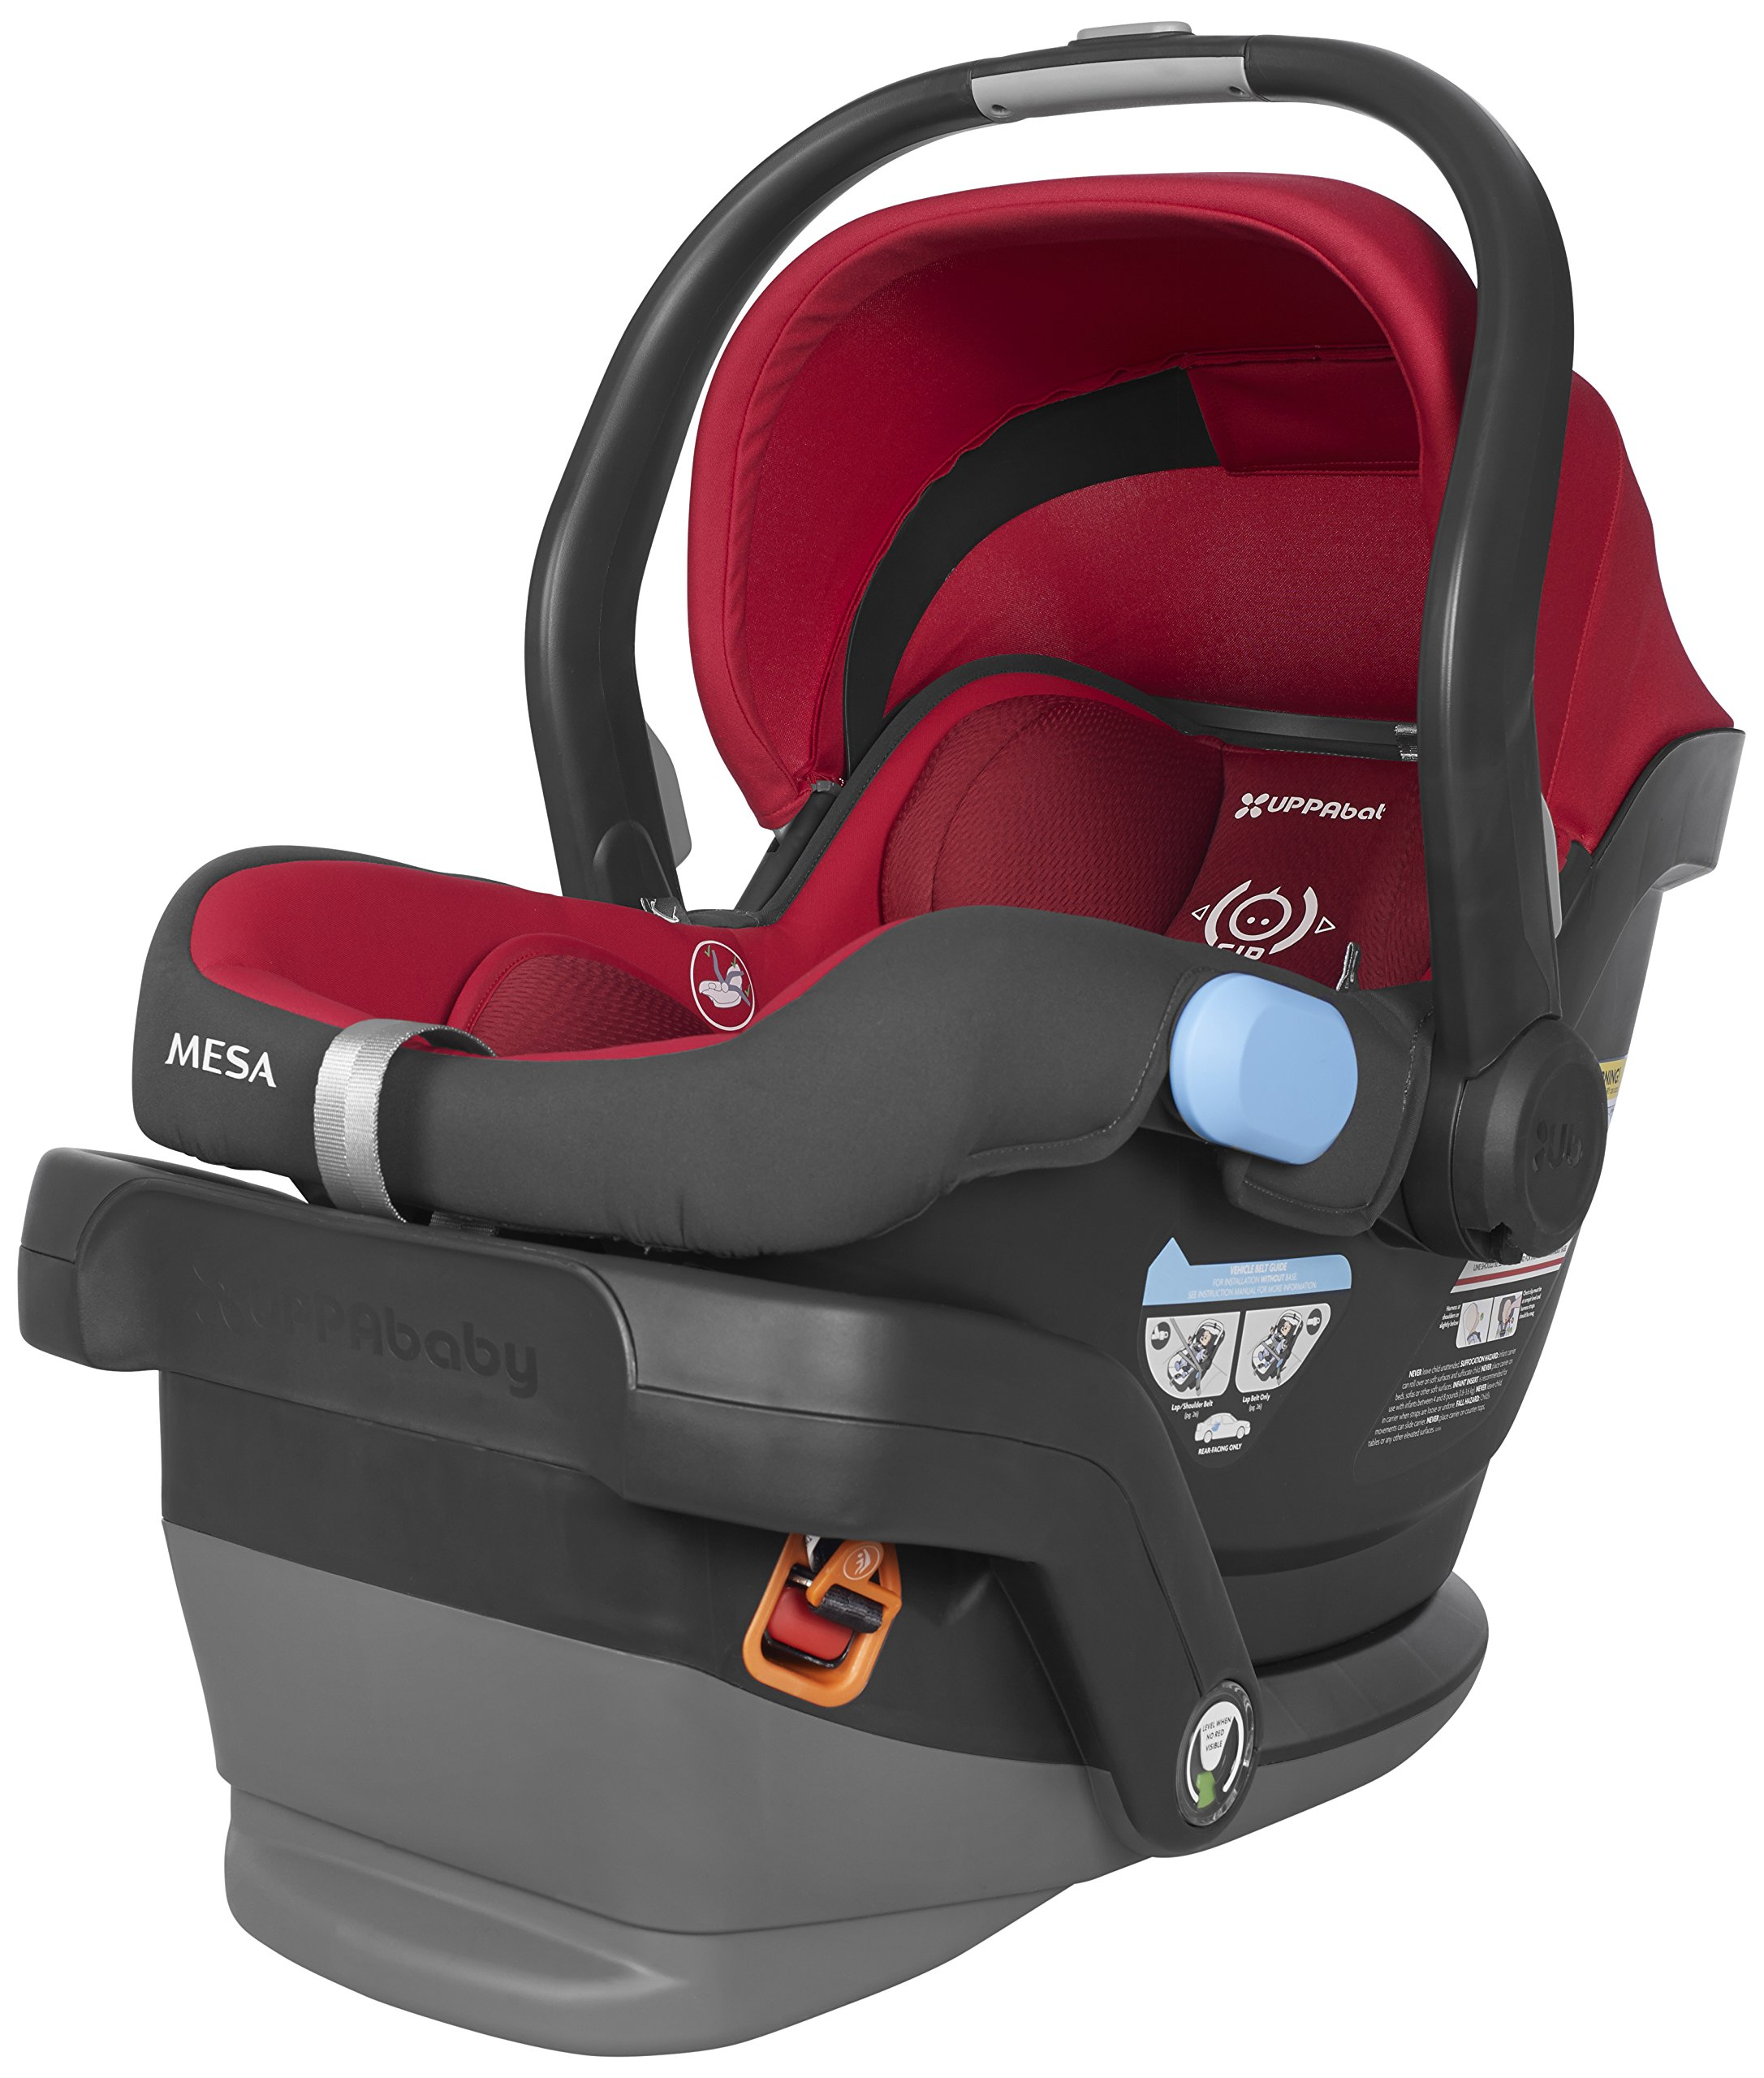 2018 UPPAbaby MESA Infant Car Seat -Denny (Red)